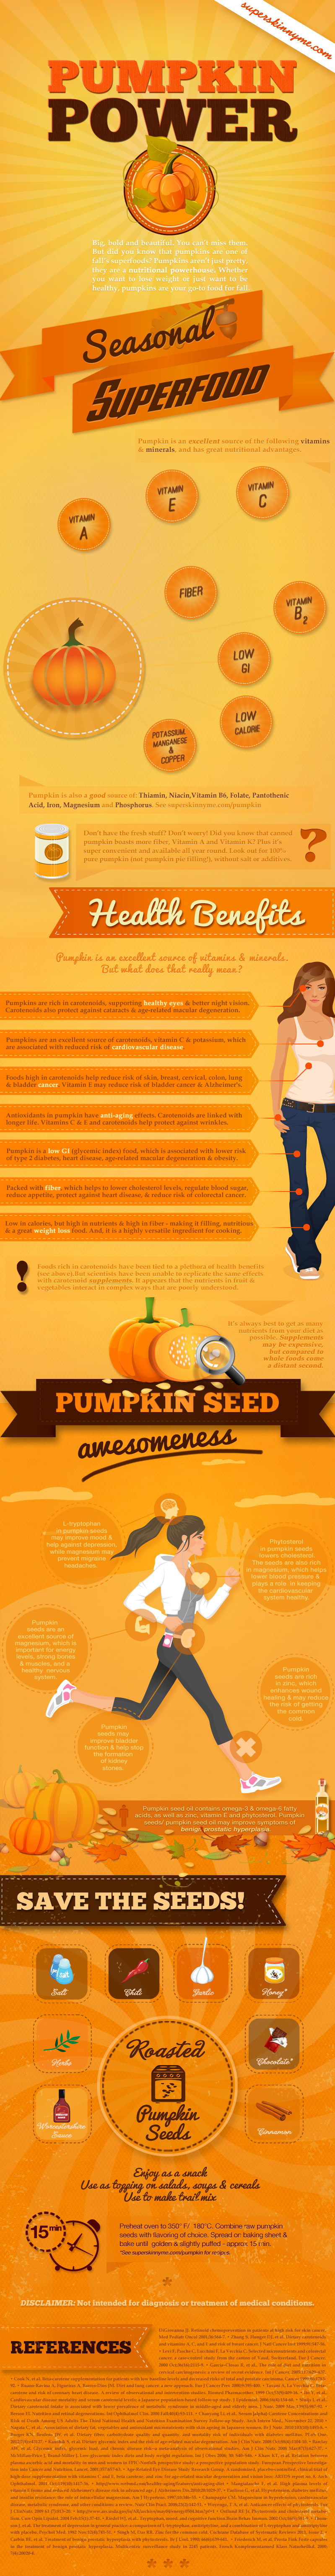 Pumpkin Power: Why pumpkins are a superfood